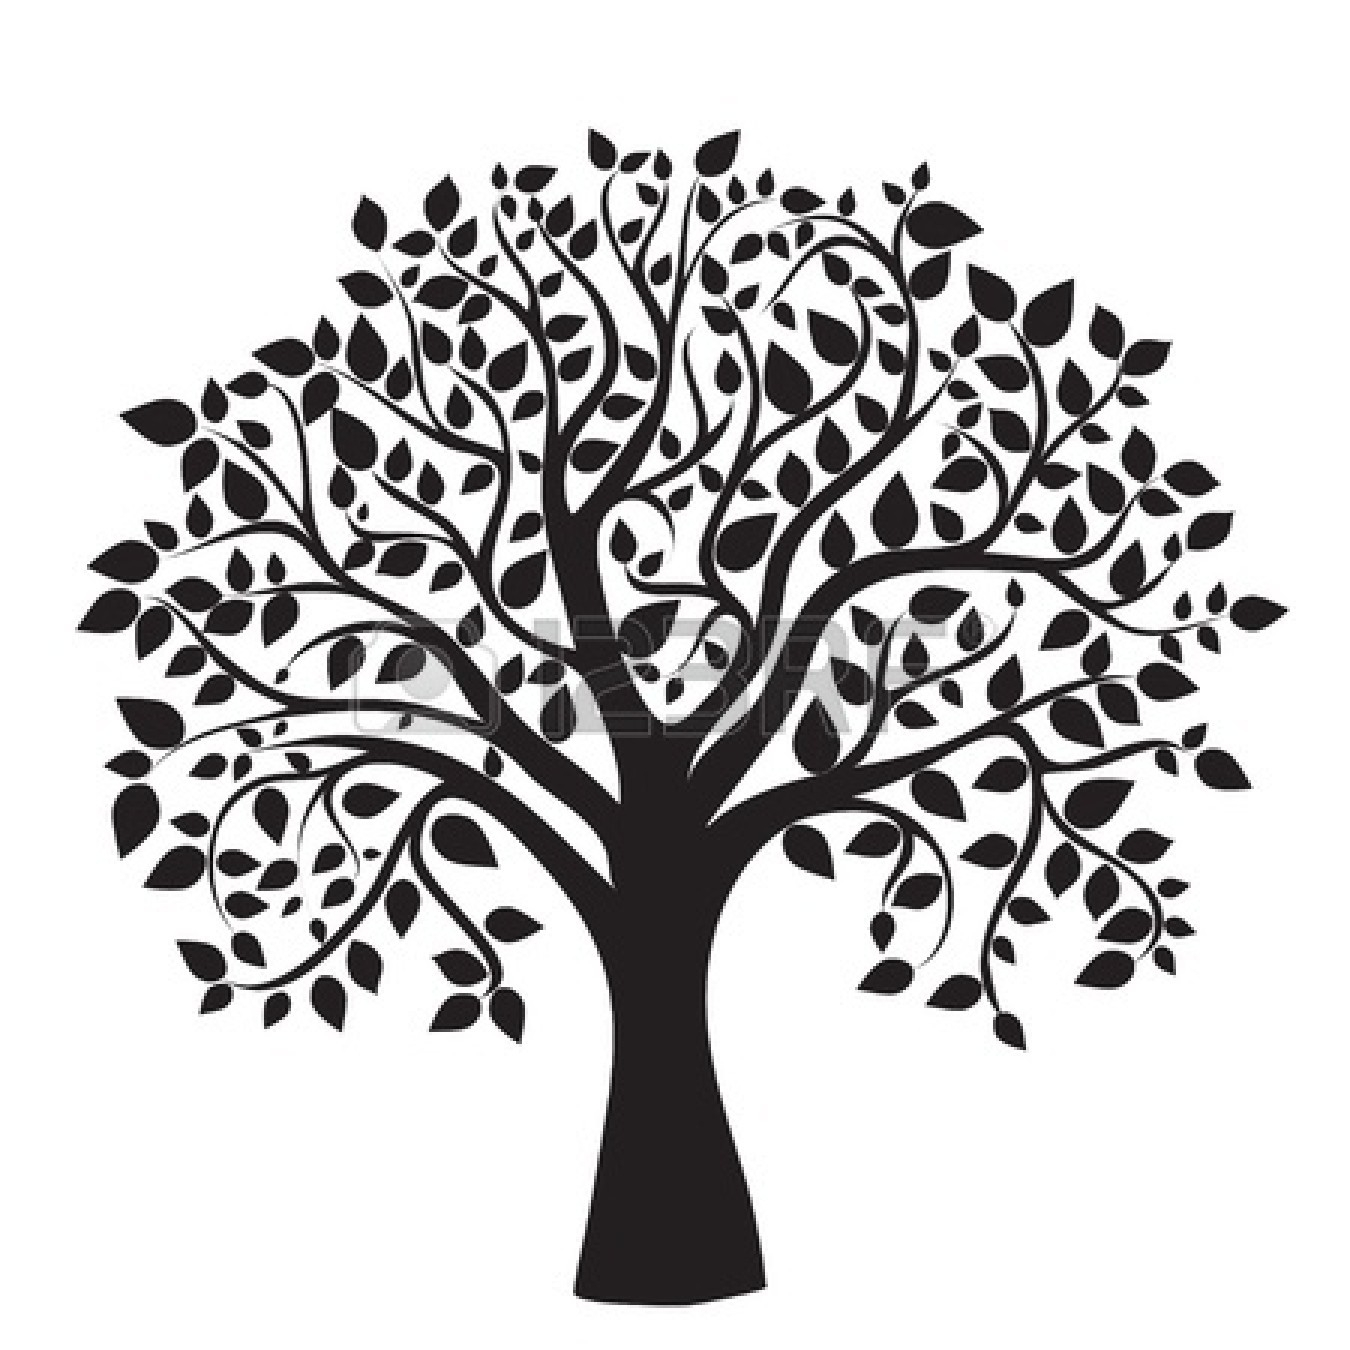 Tree Clipart Black And White